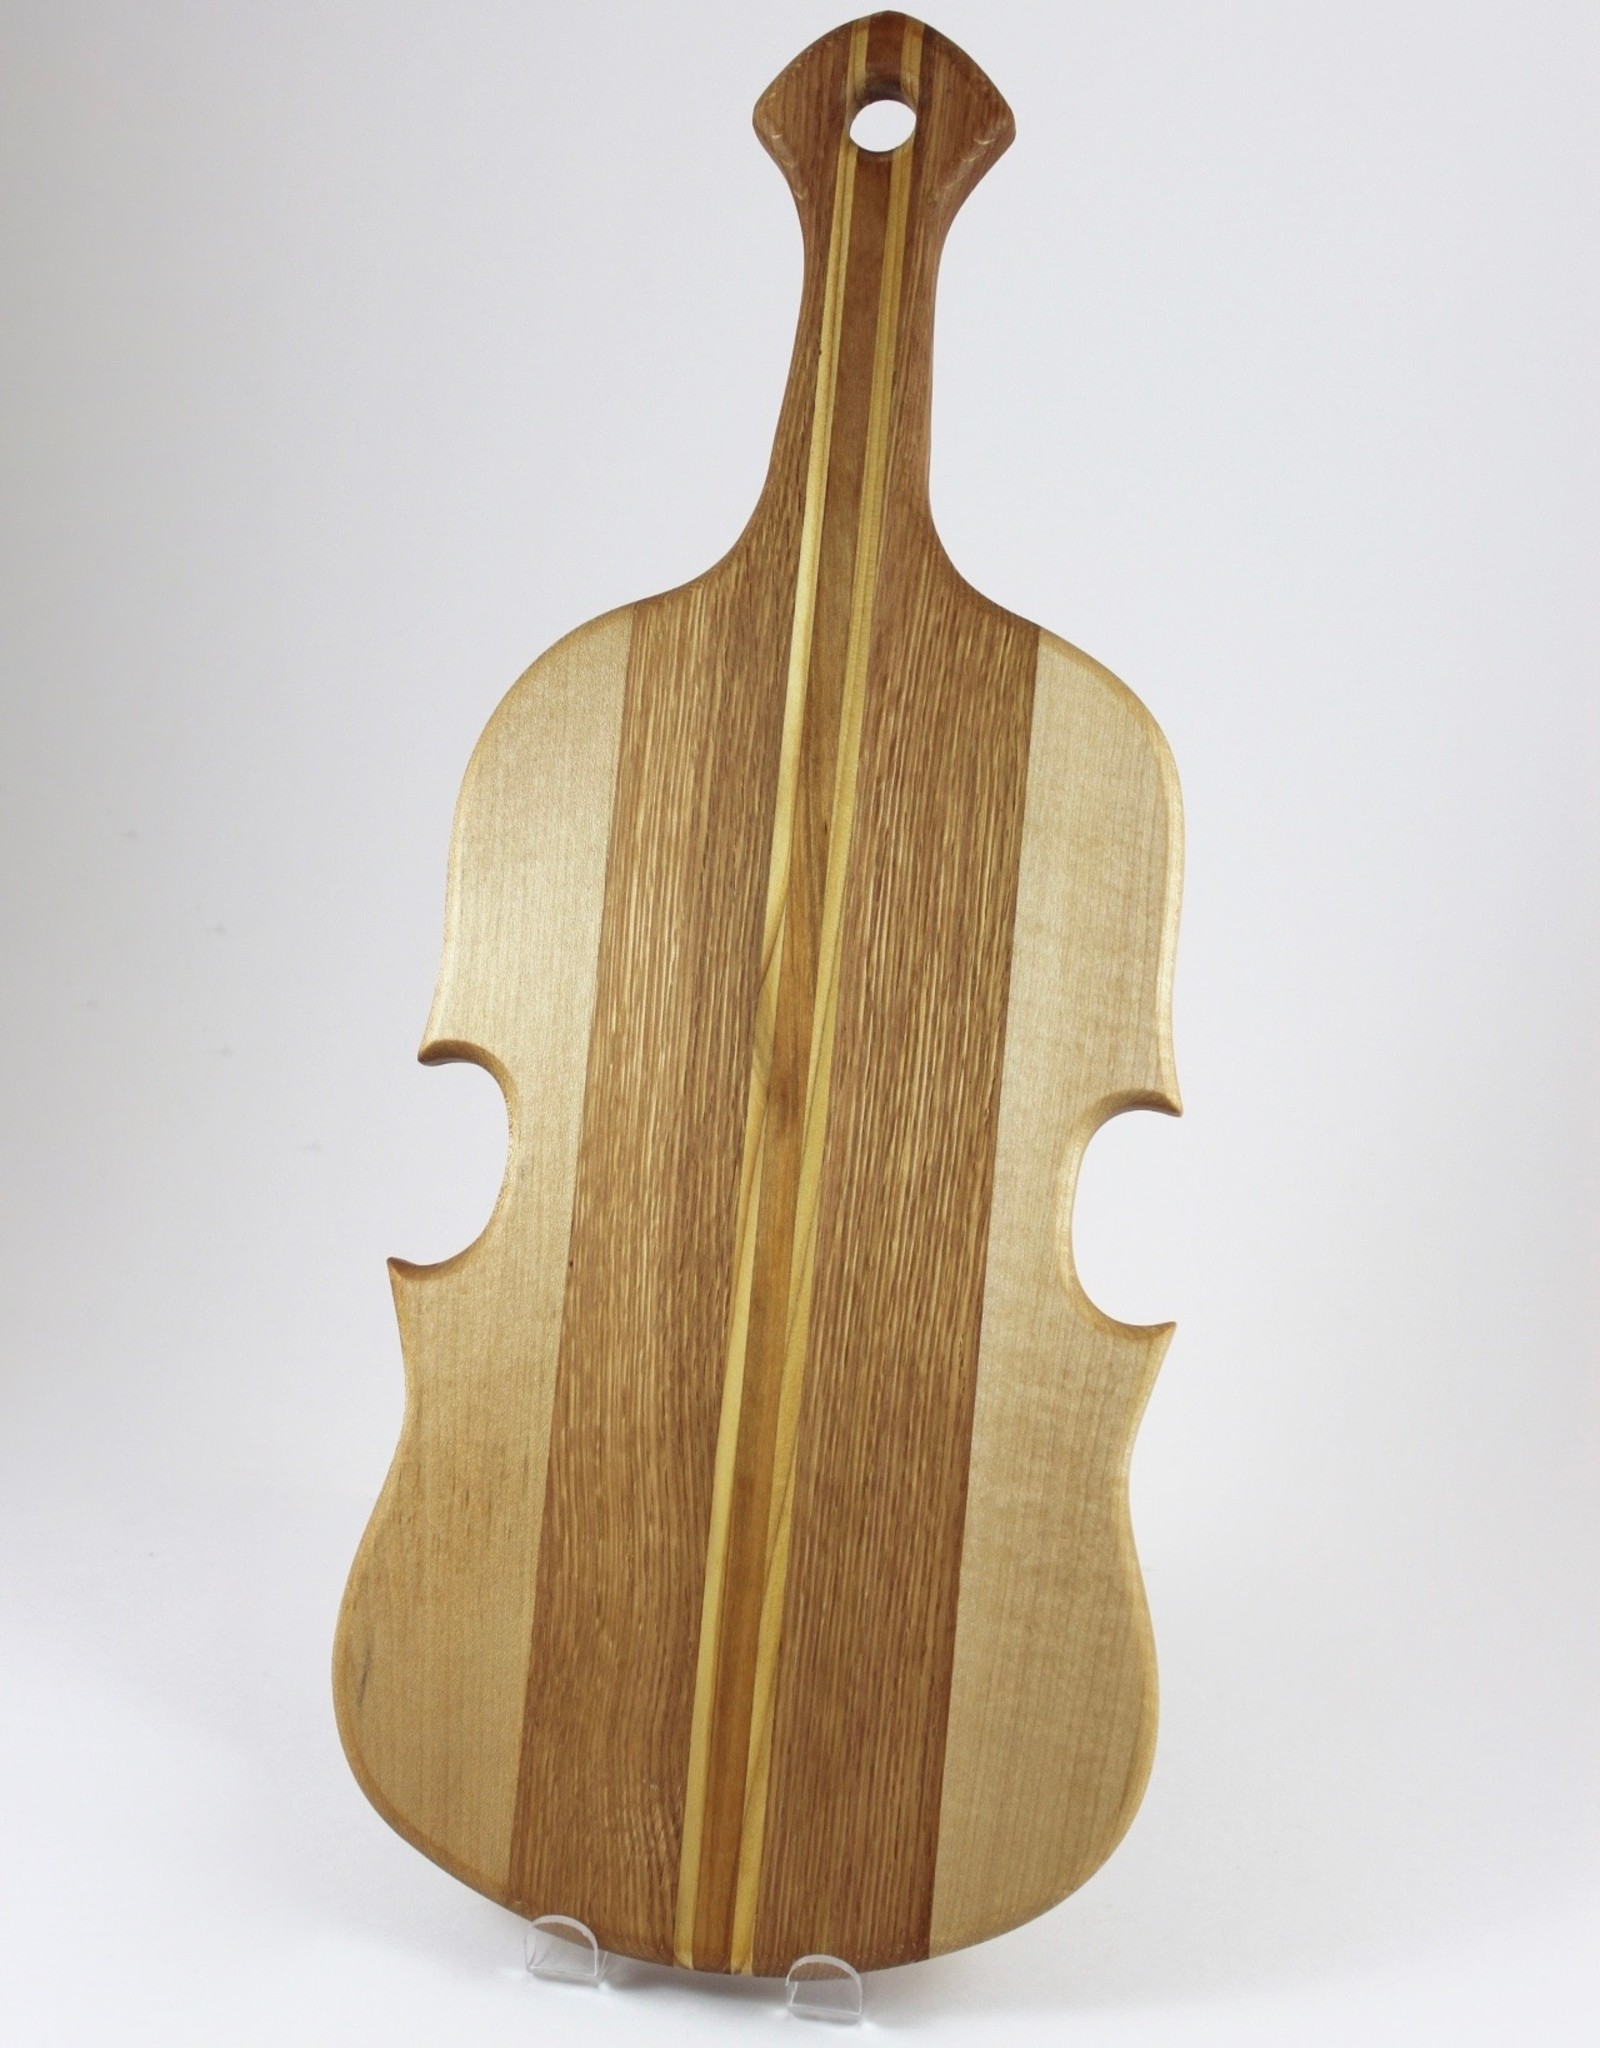 Robert Evans Fiddle Serving Board by Woodsmiths